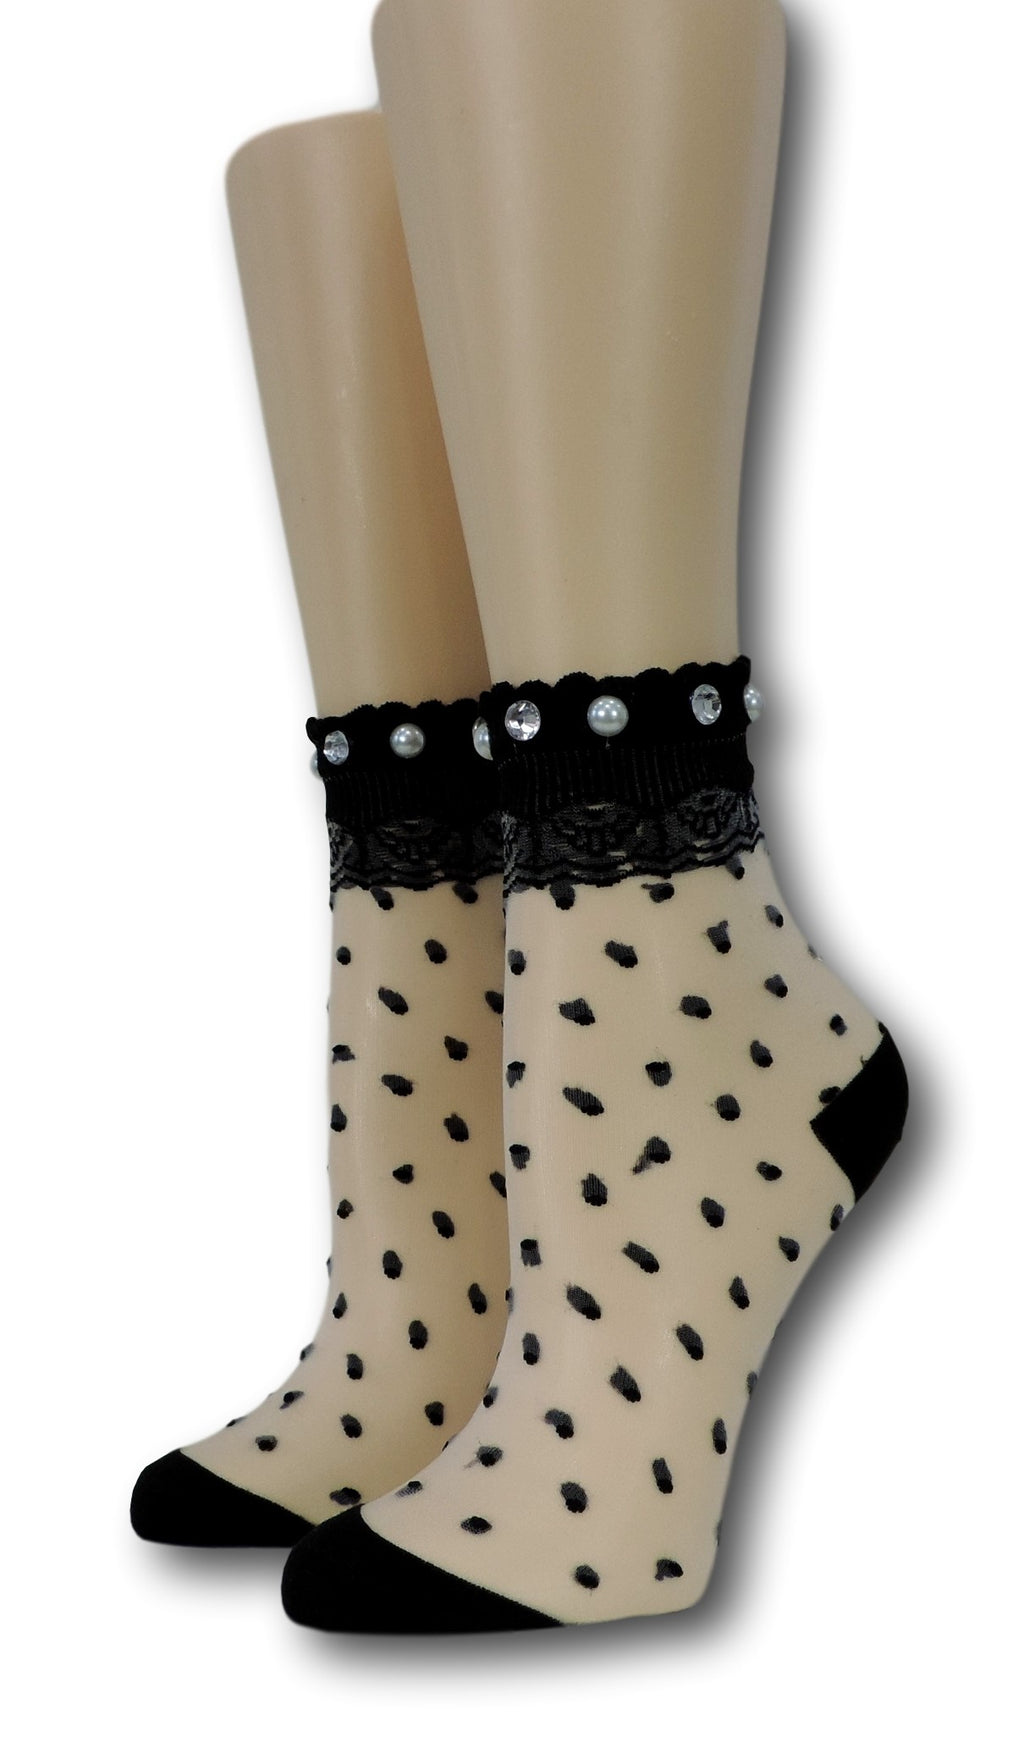 Black Royal Dotted Sheer Socks with beads